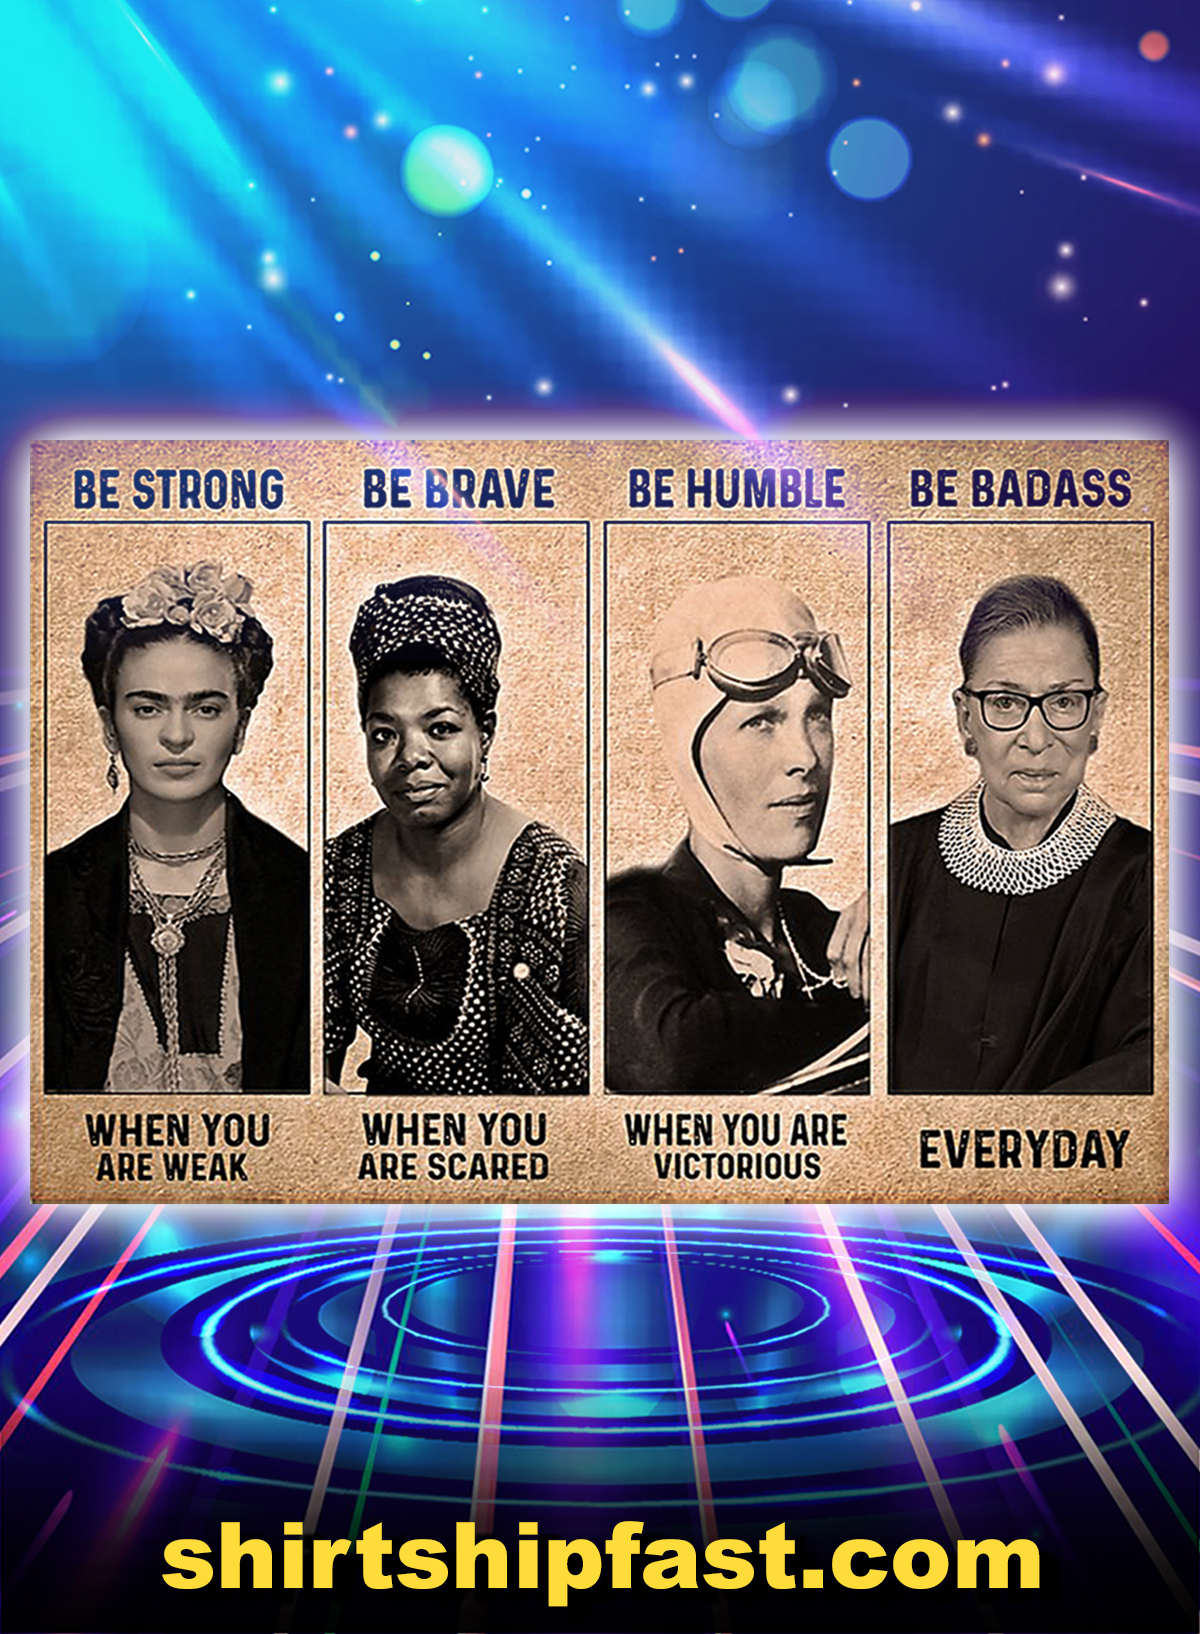 Frida kahlo and maya angelou feminist be strong be brave be humble be badass poster - A1